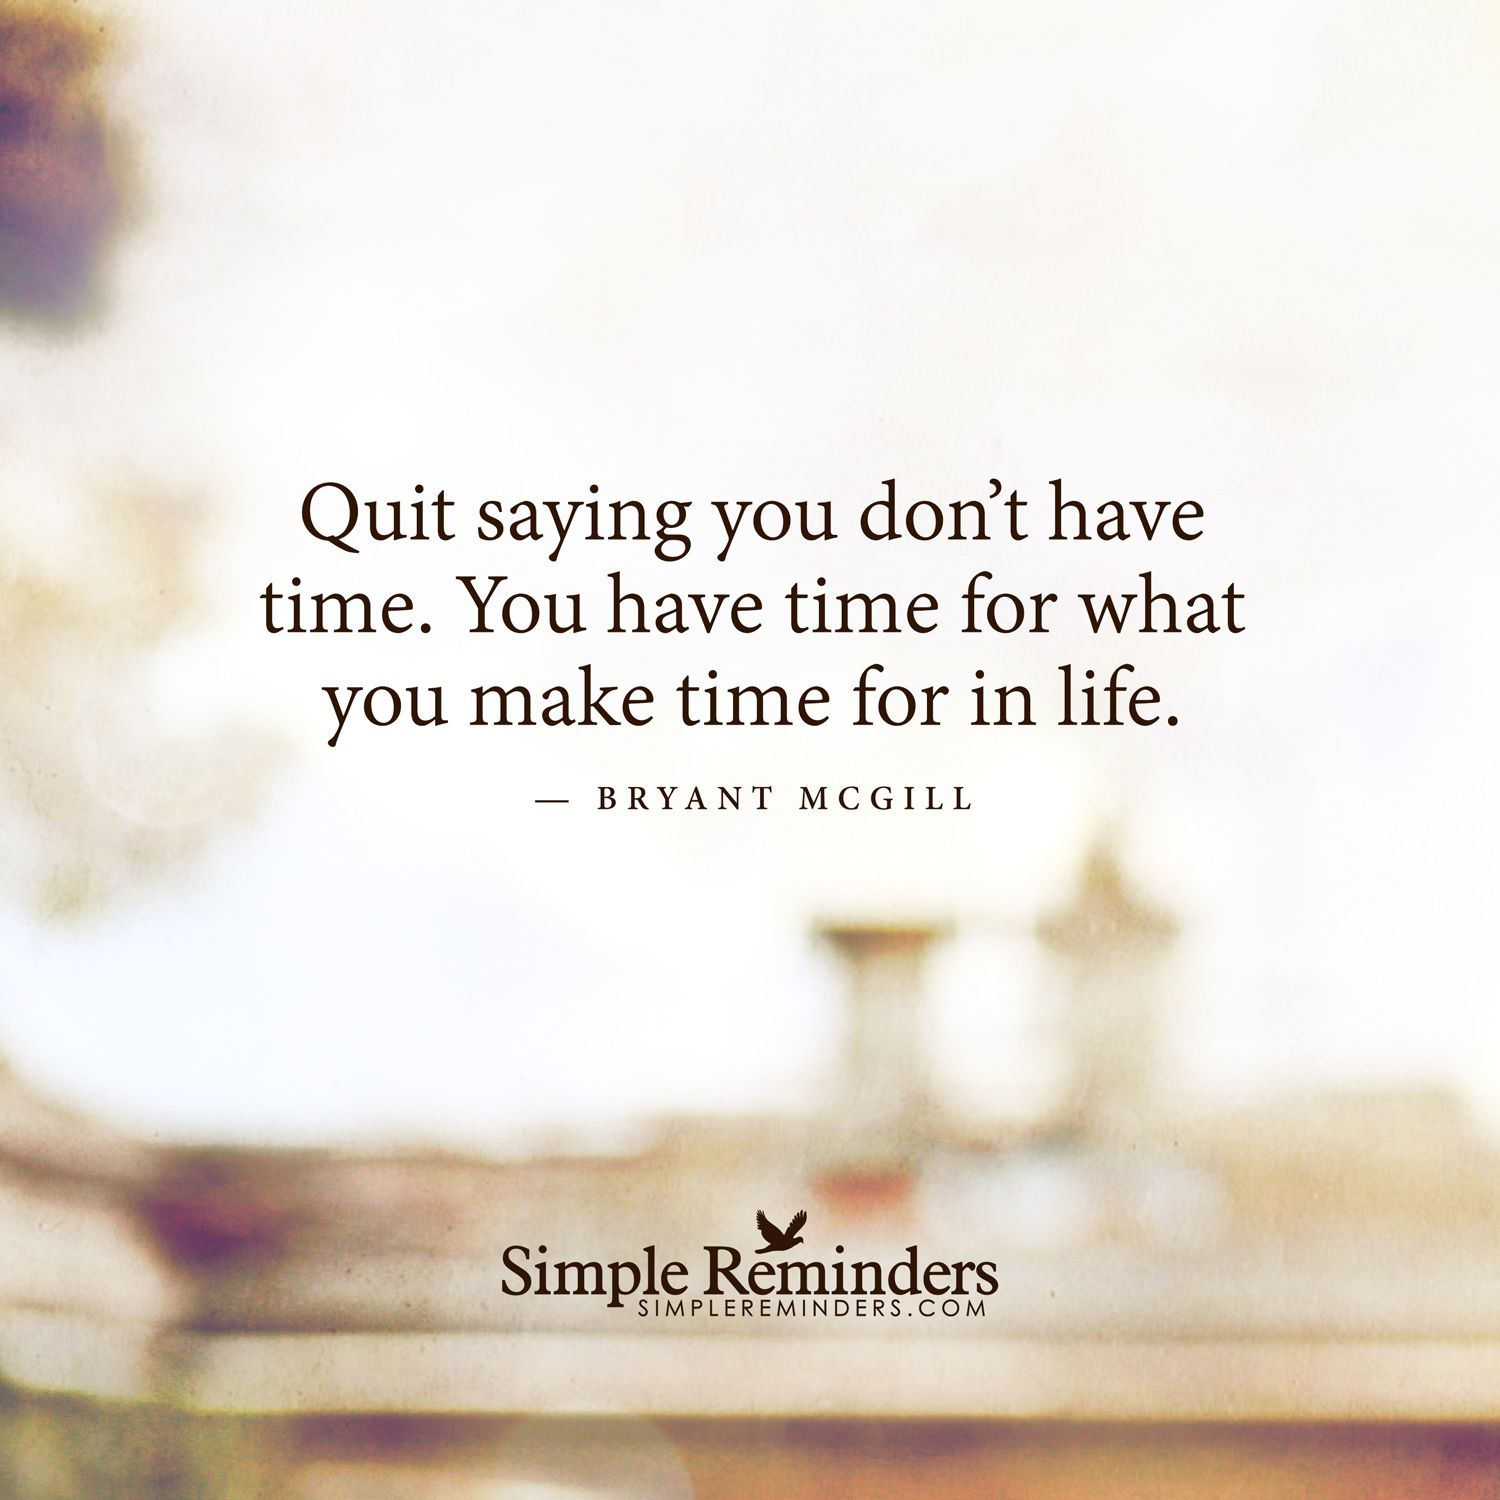 Quit Saying You Do Not Have Time By Bryant Mcgill Simple Reminders Quotes Simple Reminders Quotes To Live By